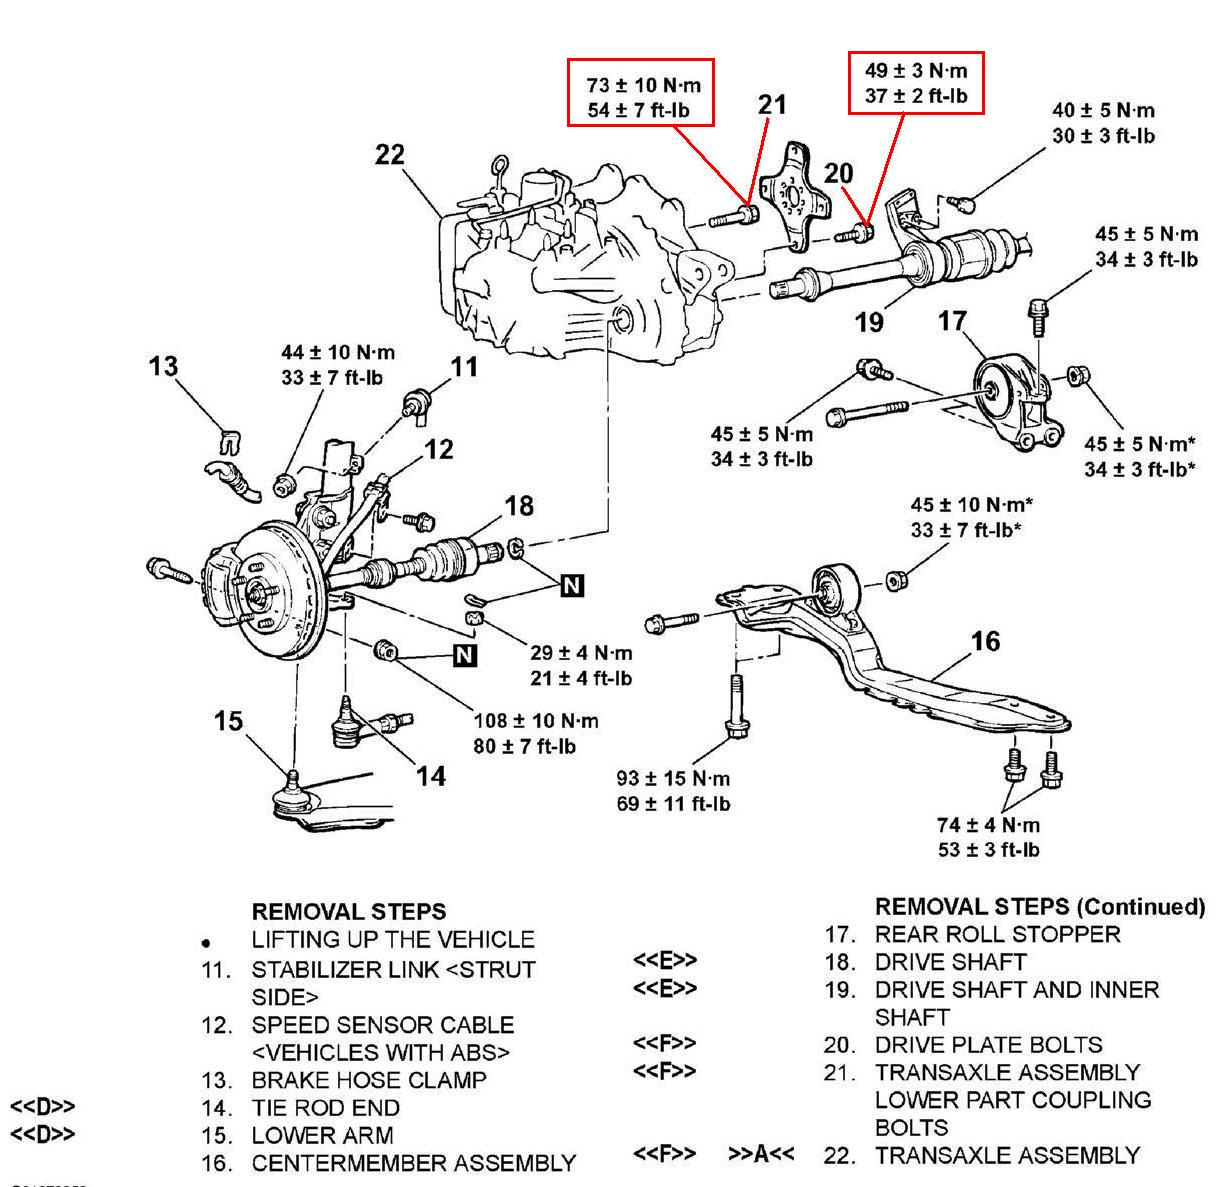 How Many Foot Pounds Of Torque To Torque The Transmission To The Engine On A 2003 Gts Mitsubishi Eclipse 3 0